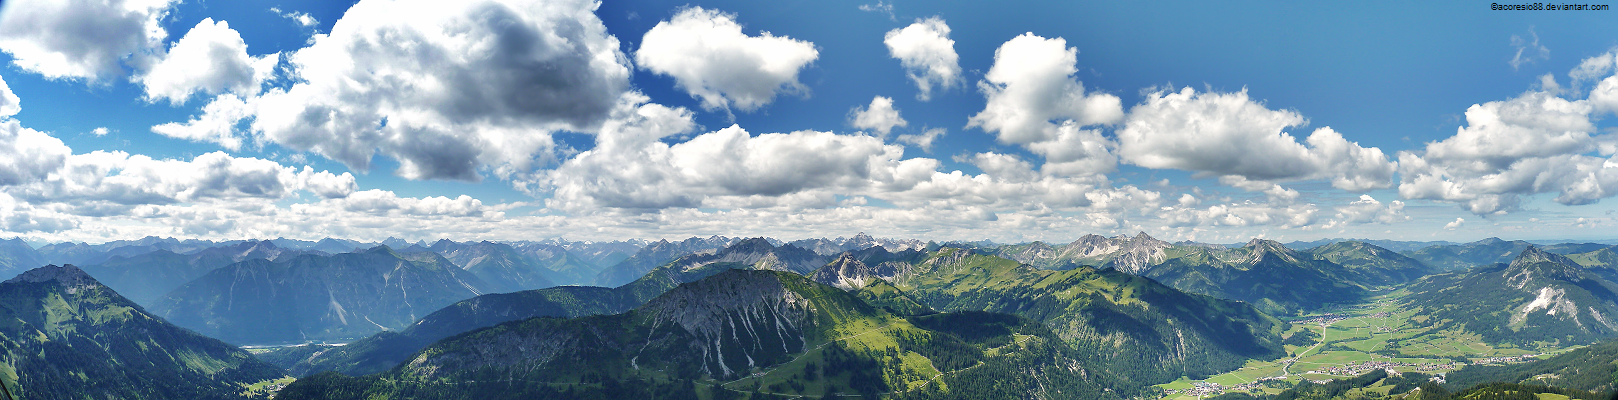 Allgaeu Alps panoramic by acoresjo88